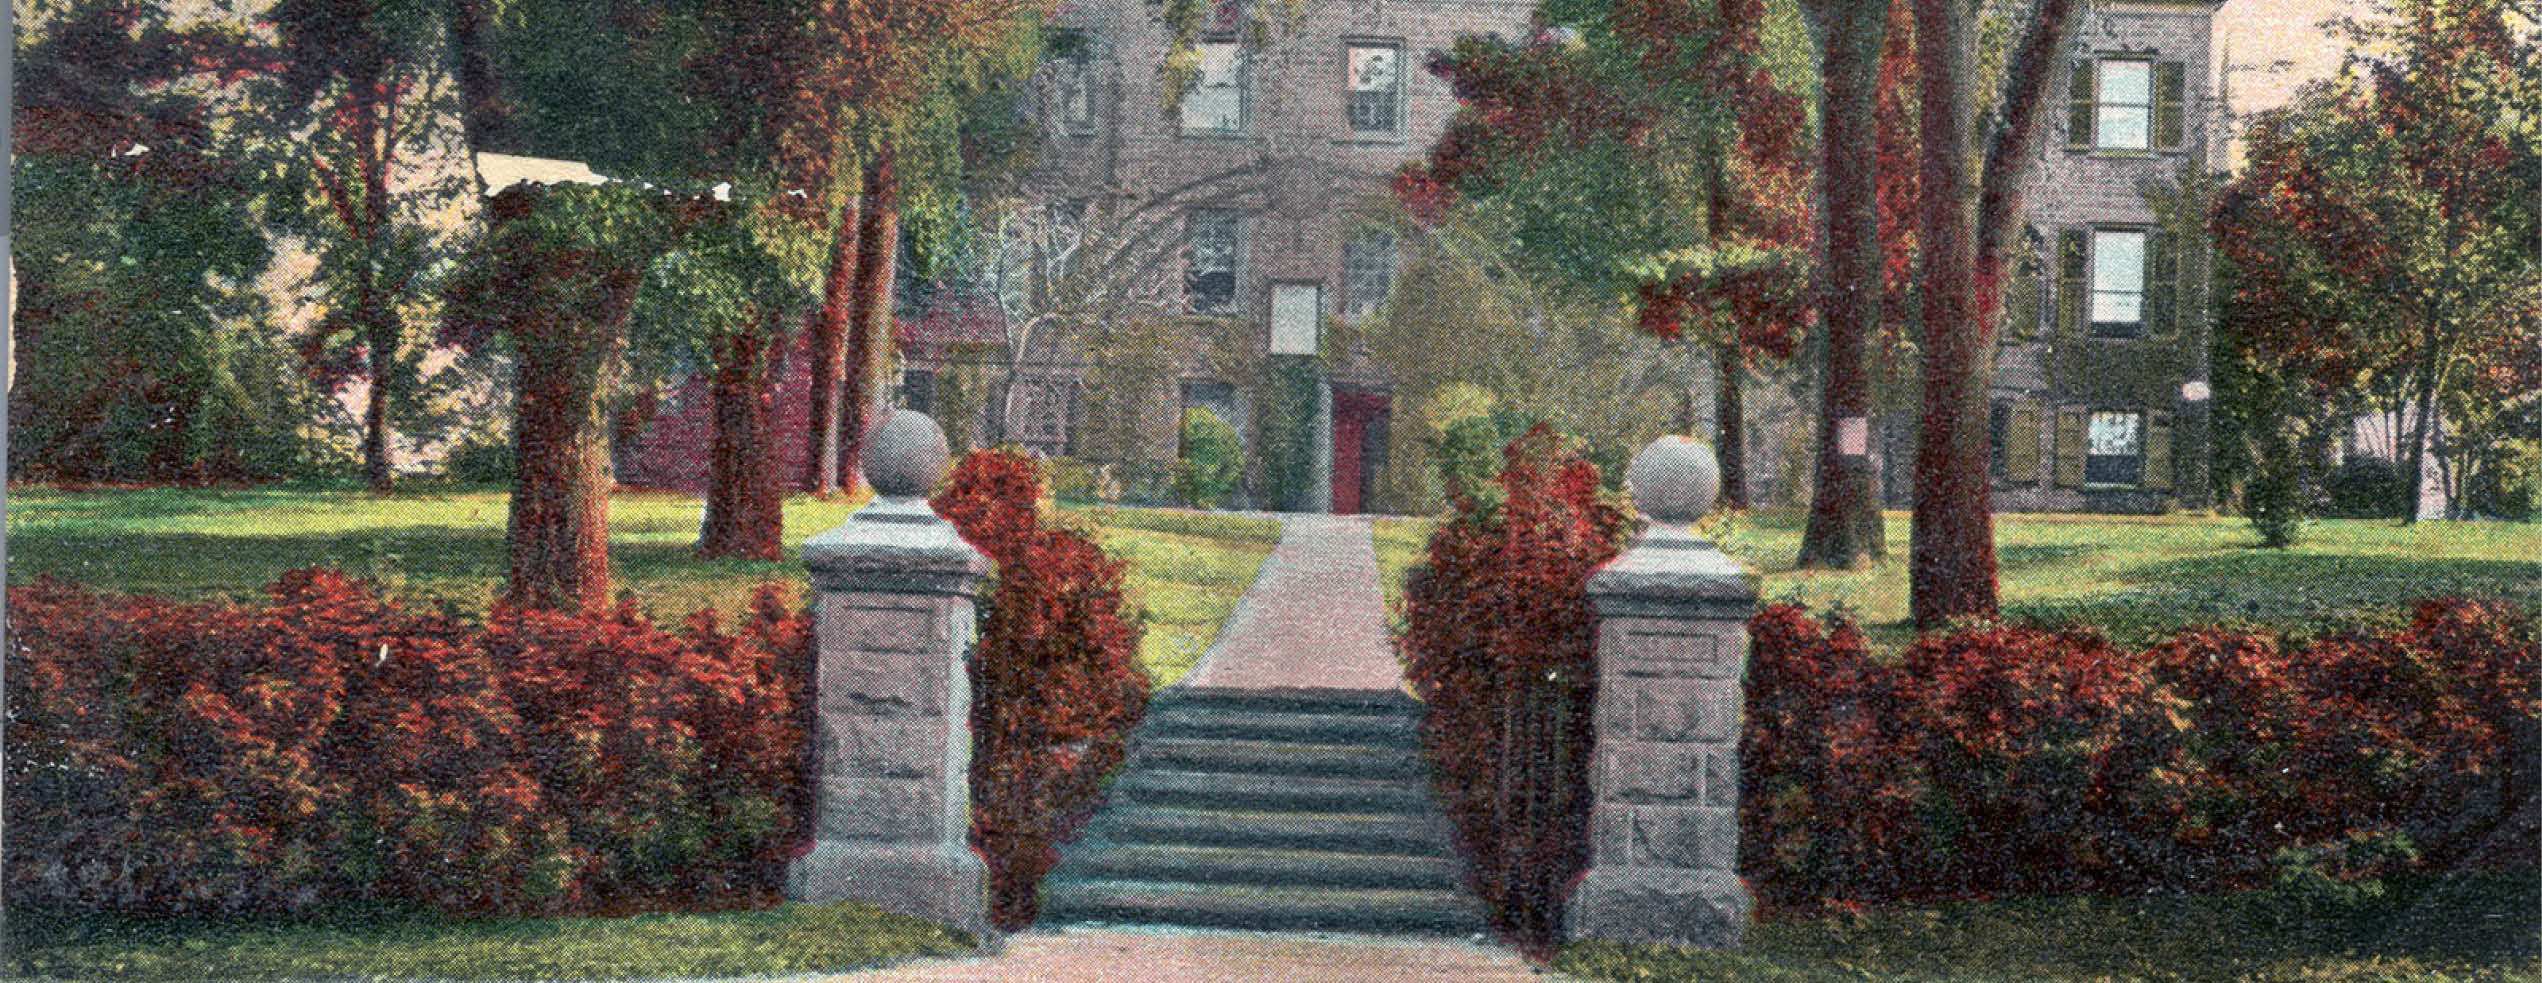 Memorial Gateway, Class 1902, Rutgers College, New Brunswick, N.J.